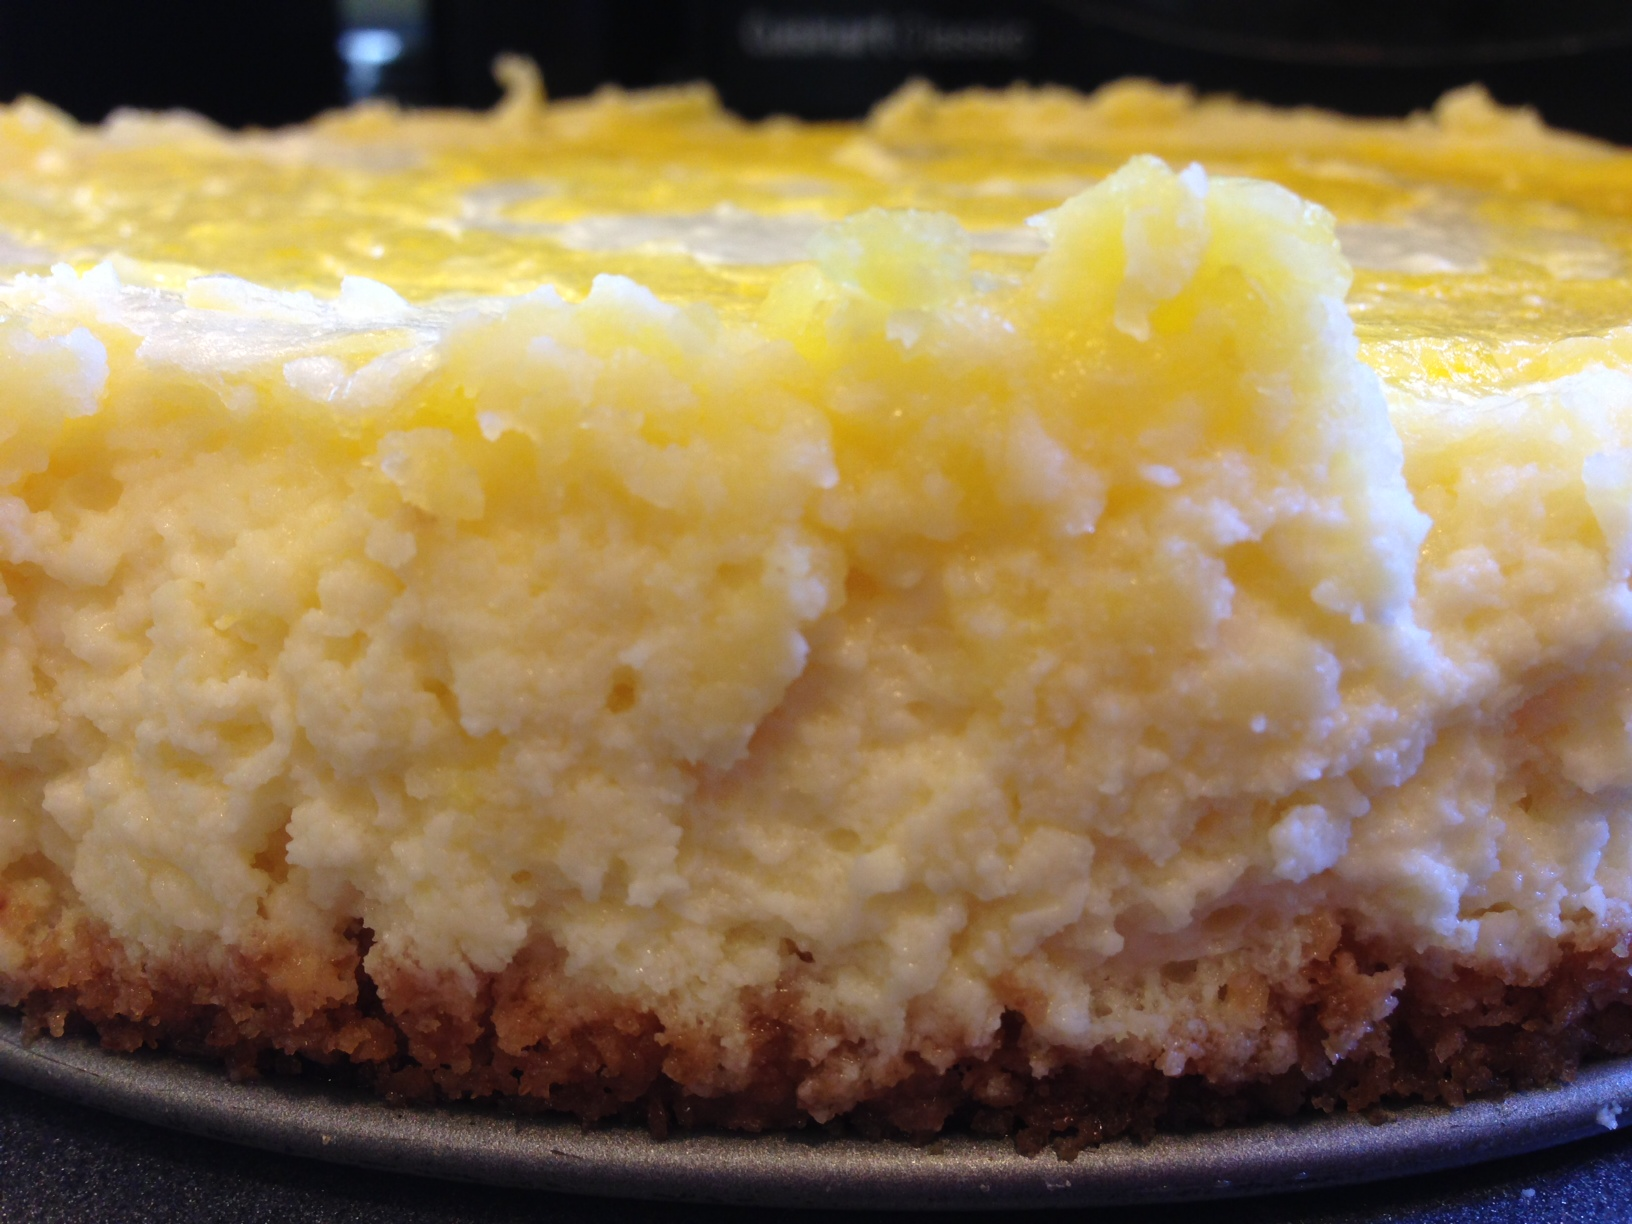 ... : TastyTreats13's Lemon Curd Marbled Cheesecake - Fae's Twist &am...